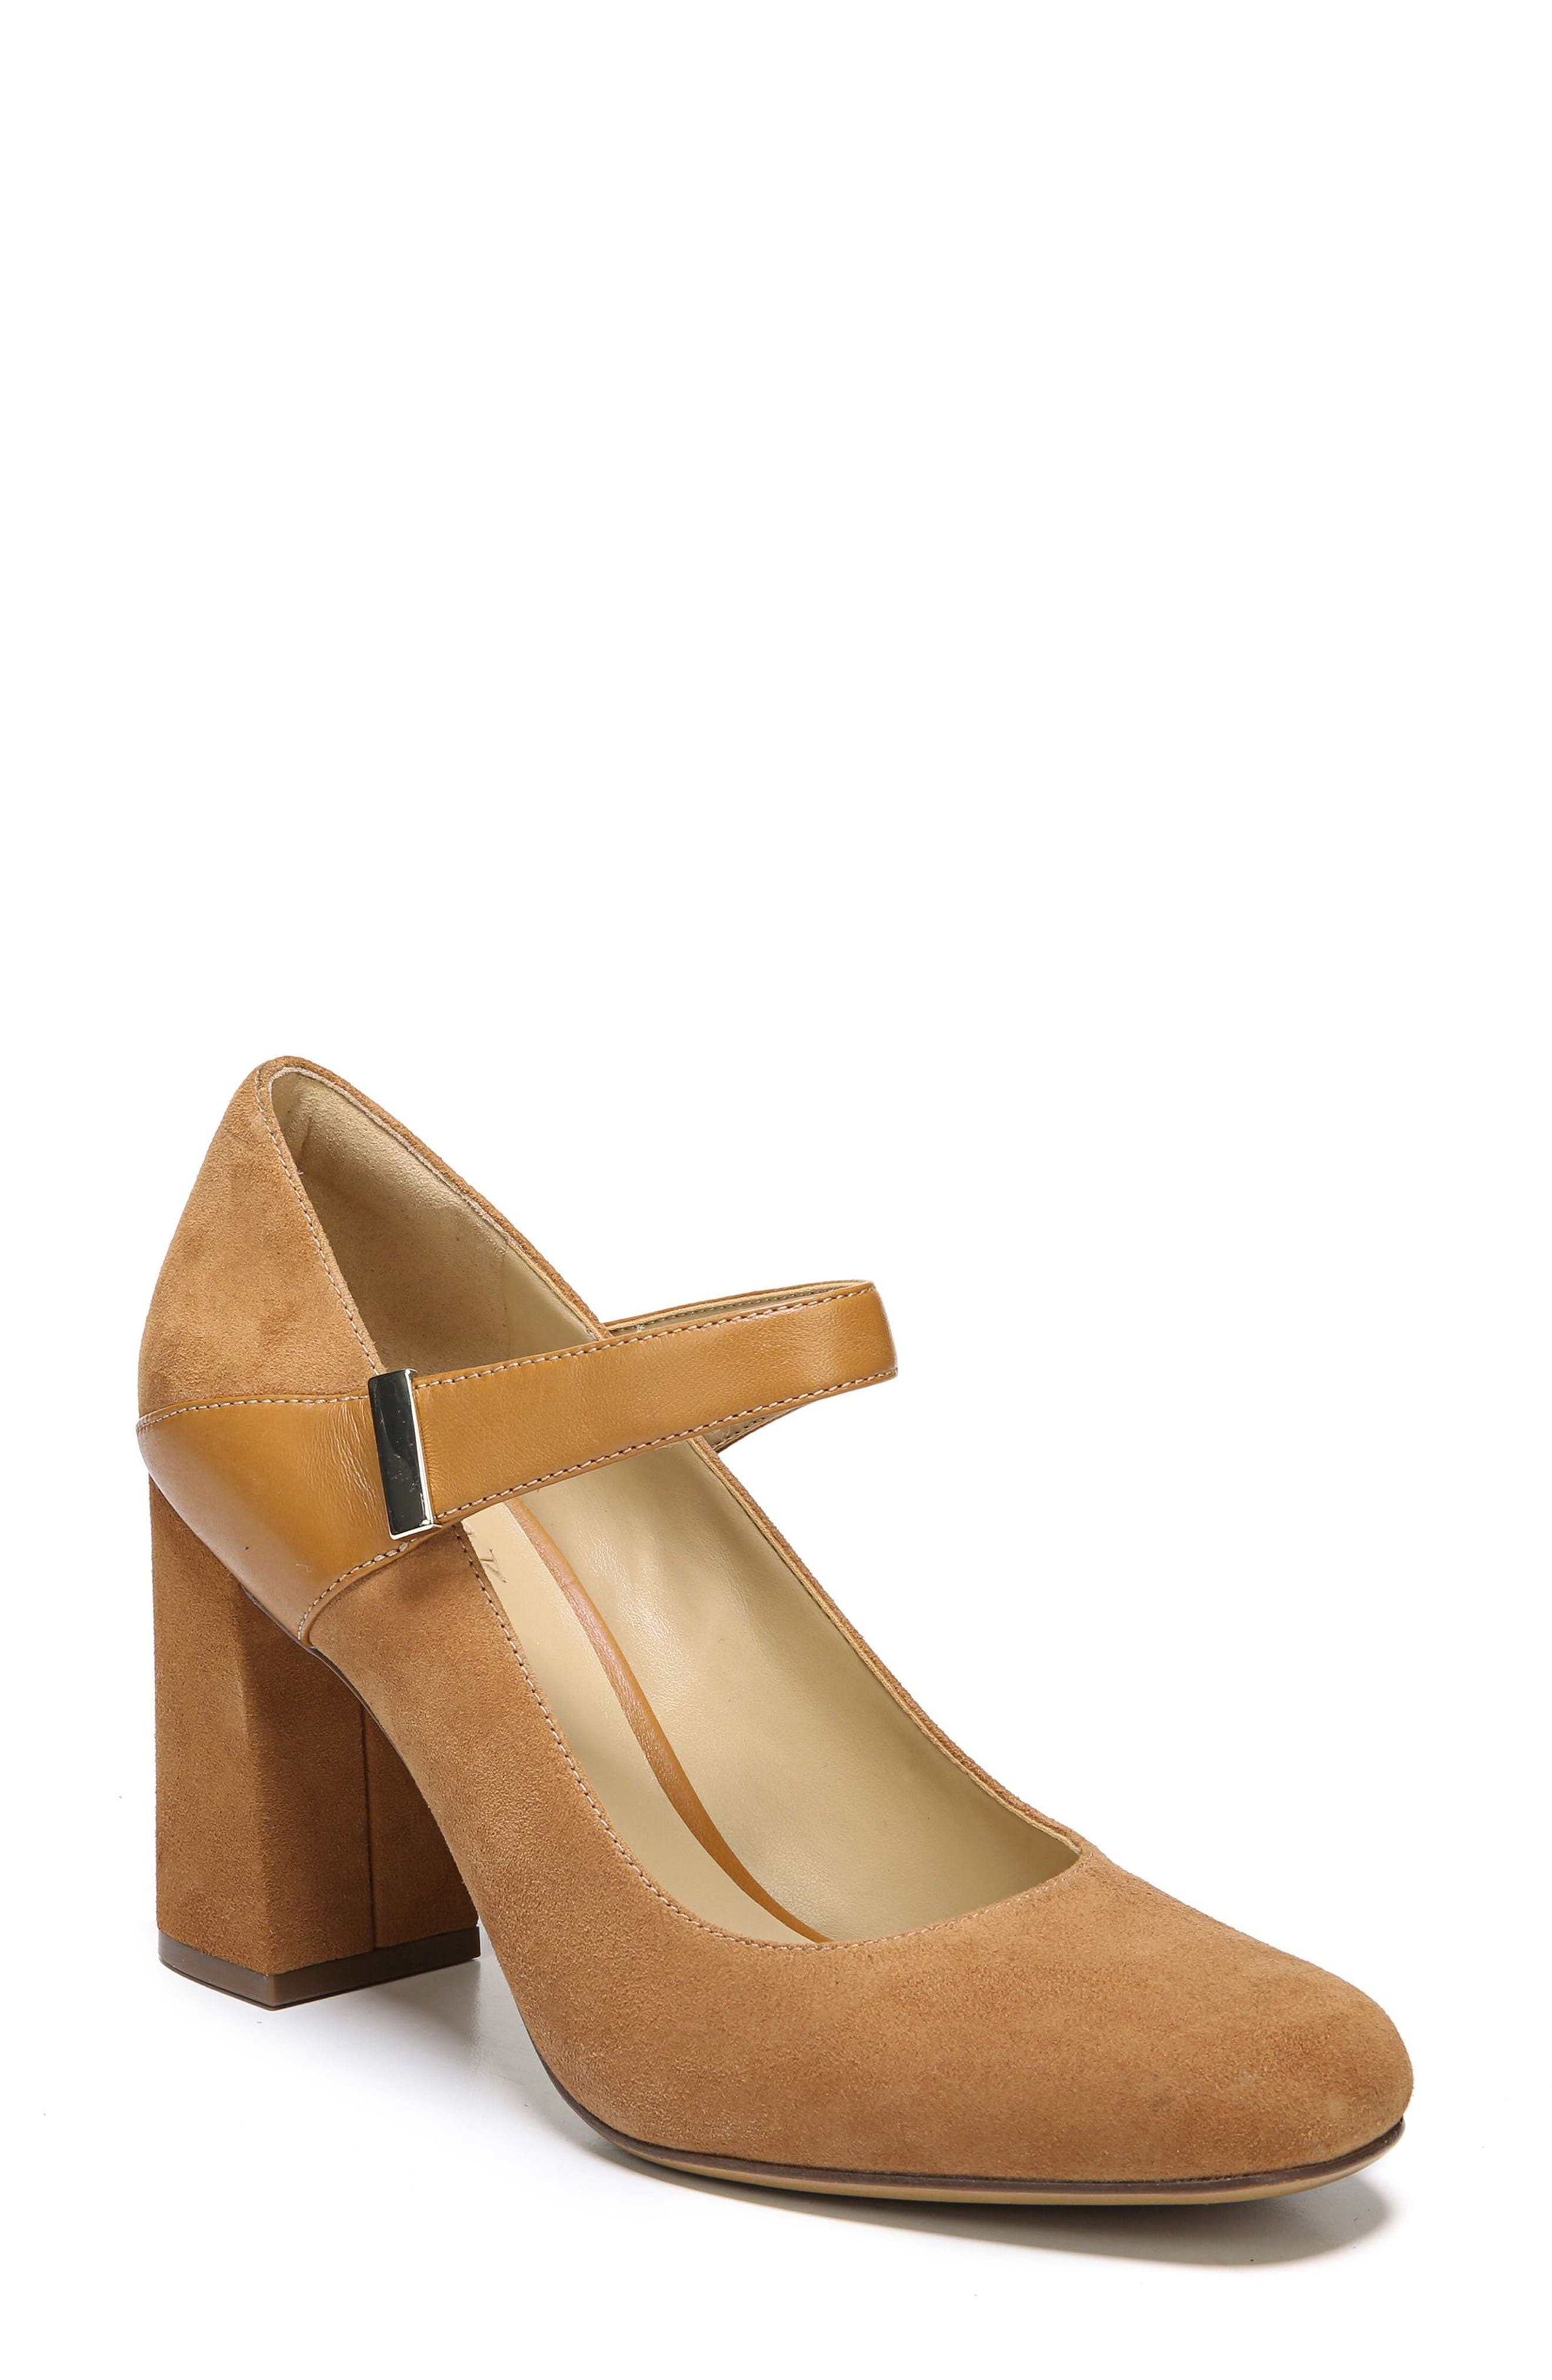 Naturalizer Reva Mary Jane Pump (Women)